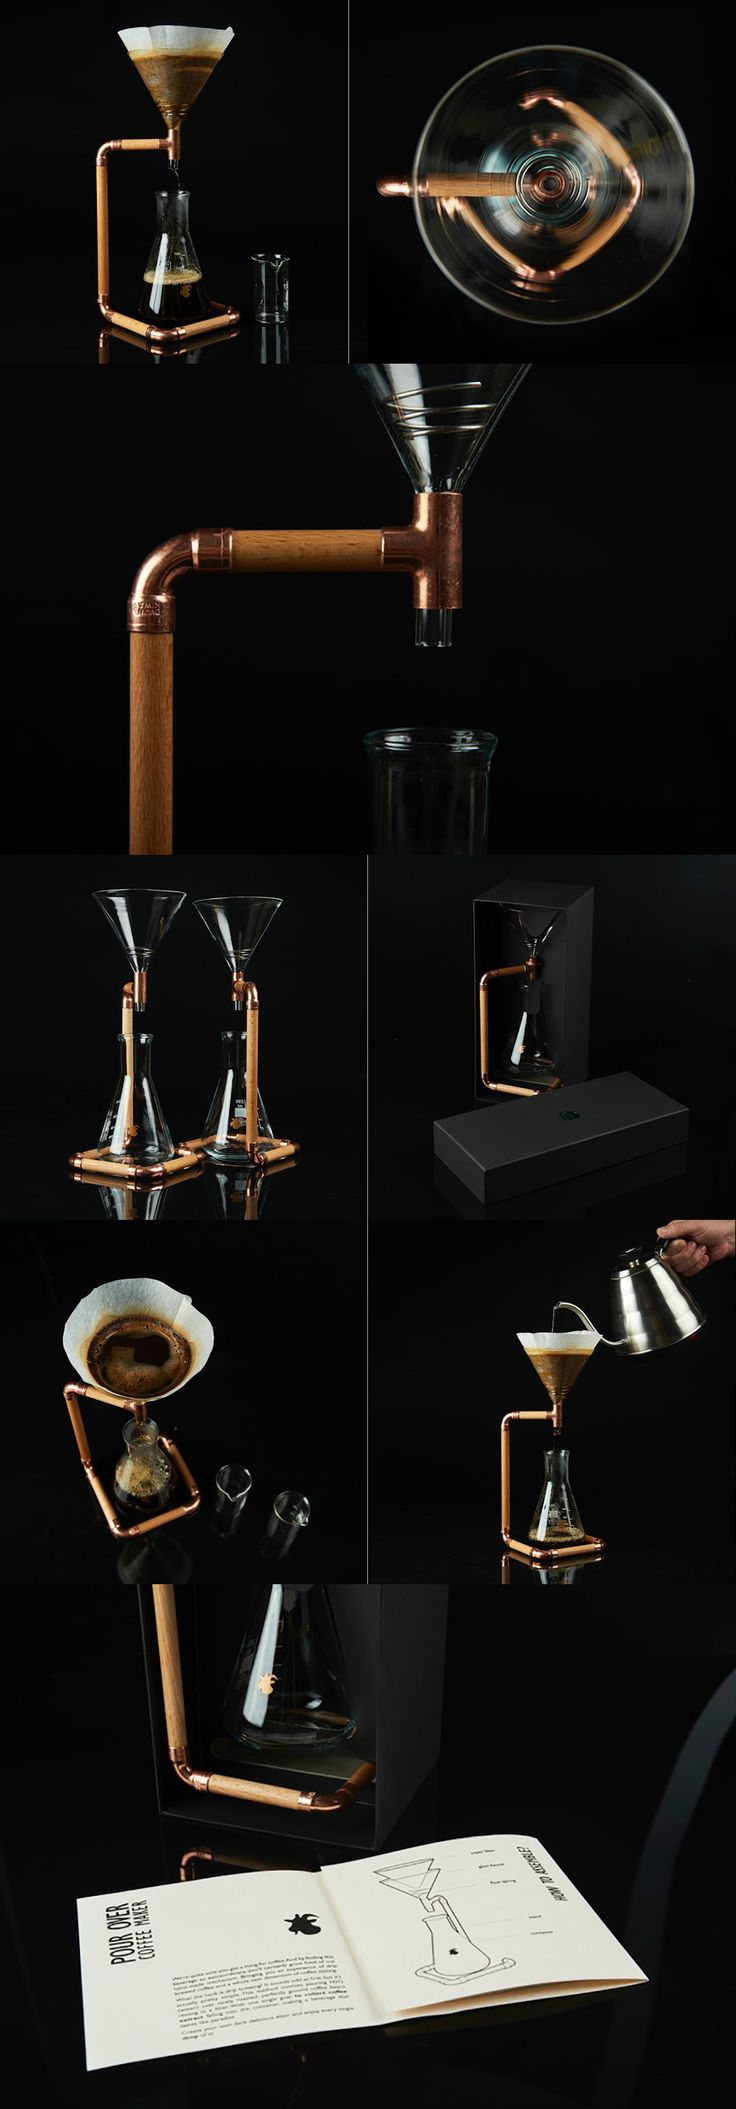 Drip Coffee Maker Design : 25+ best ideas about Drip Coffee Maker on Pinterest Drip coffee, Maker shop and Coffee pour ...